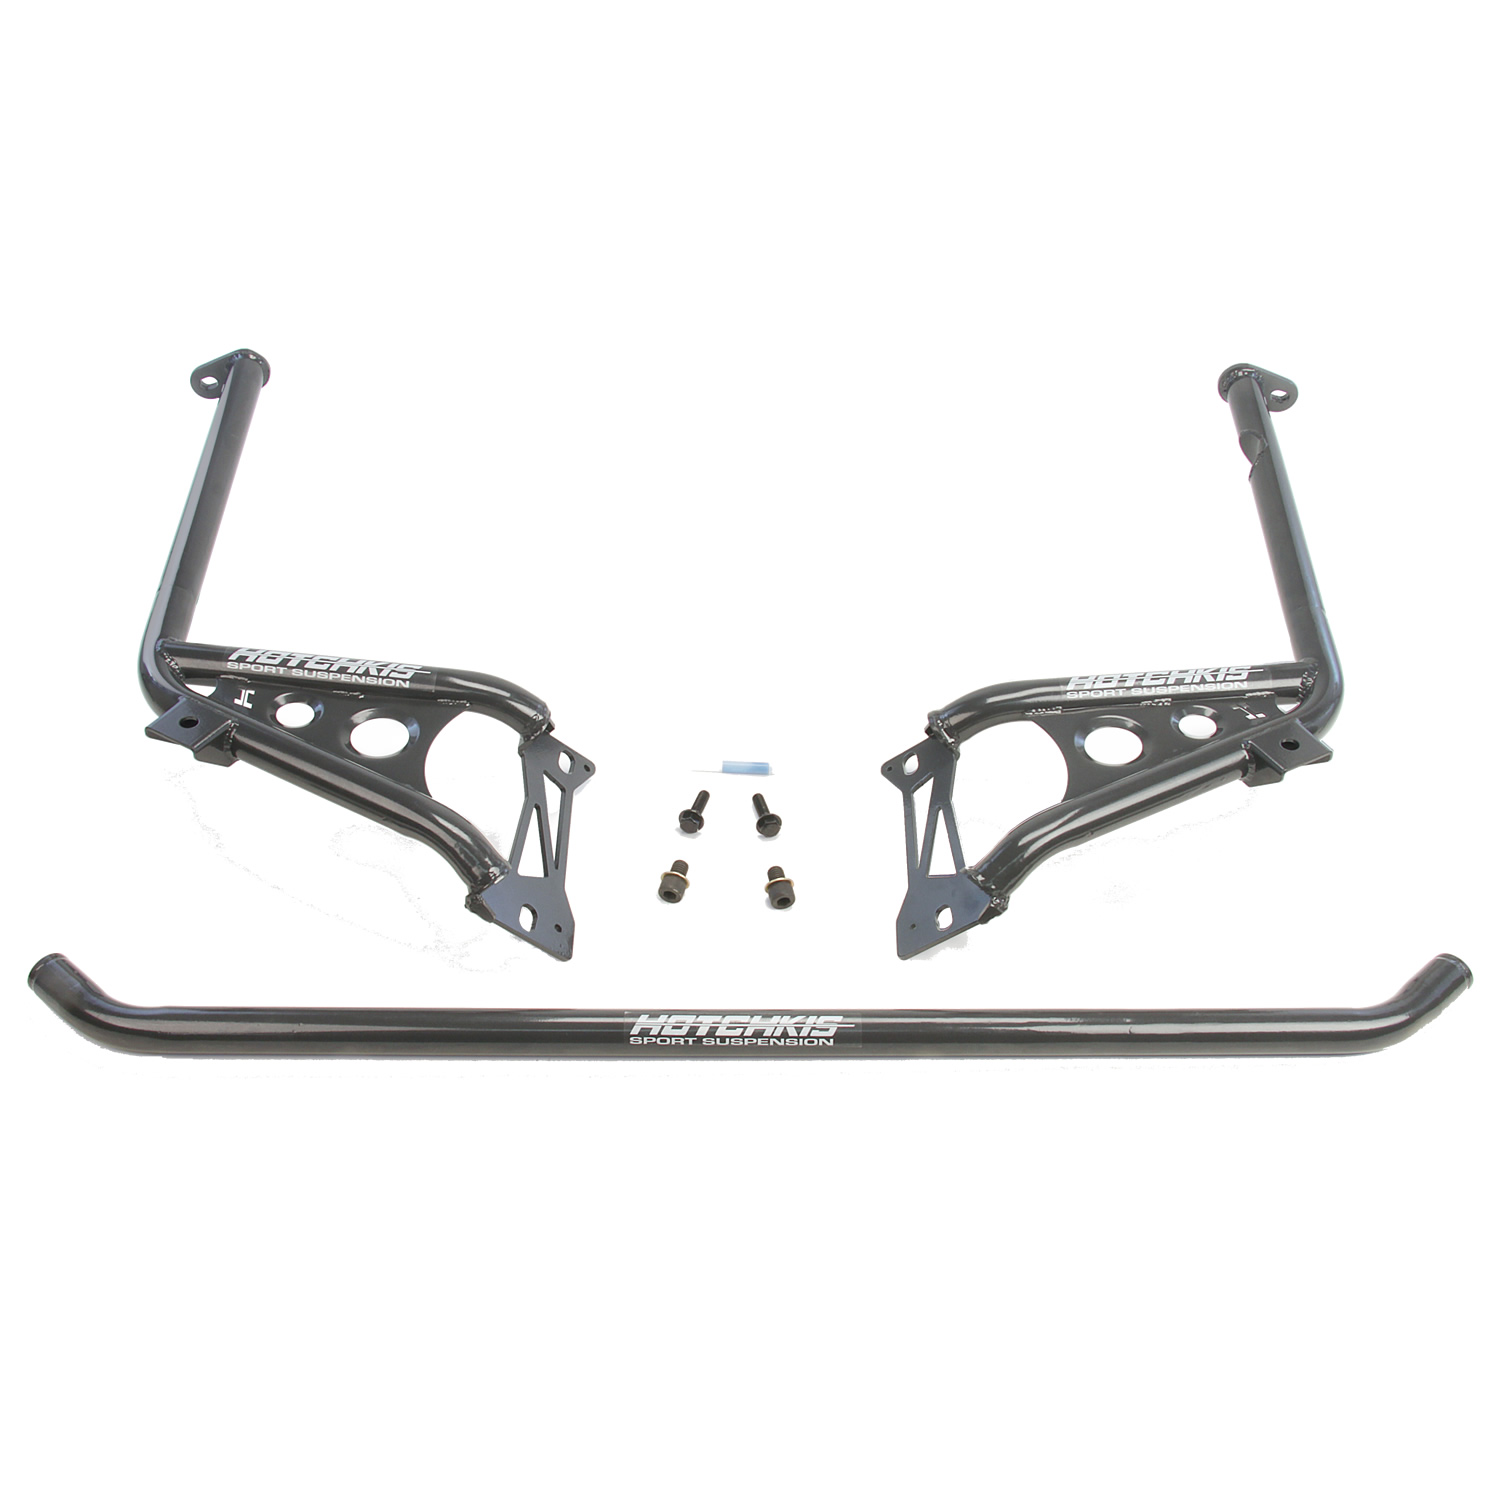 1967-1969 Camaro  1968-1974 Nova Chassis Max Handle Bars